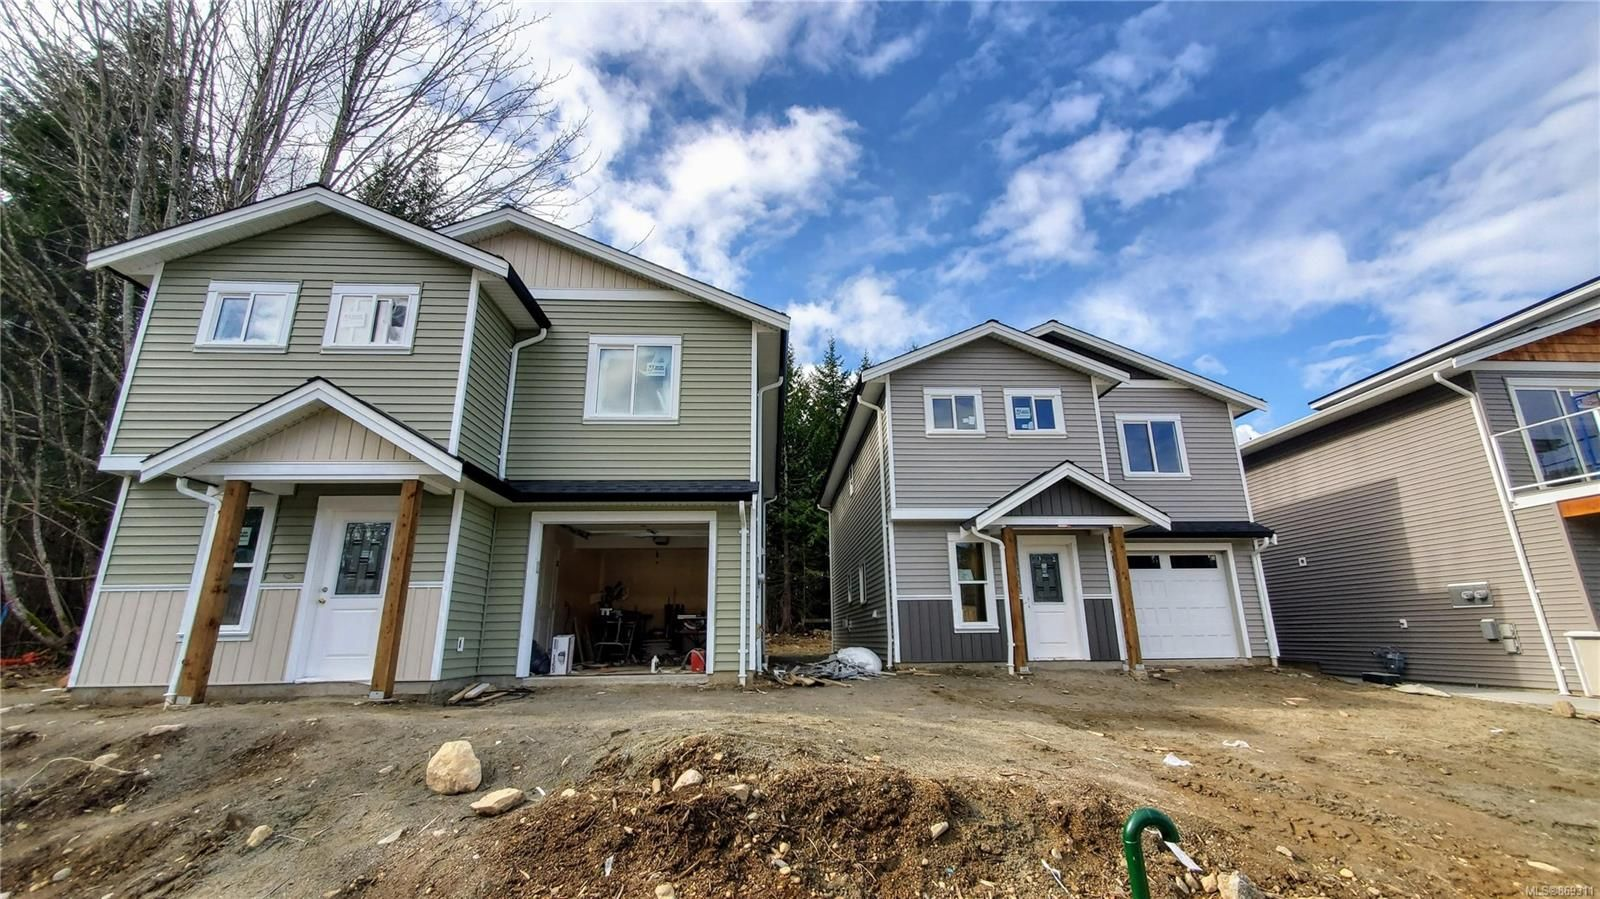 Main Photo: 1663 S Roberta Rd in : Na Chase River House for sale (Nanaimo)  : MLS®# 869311